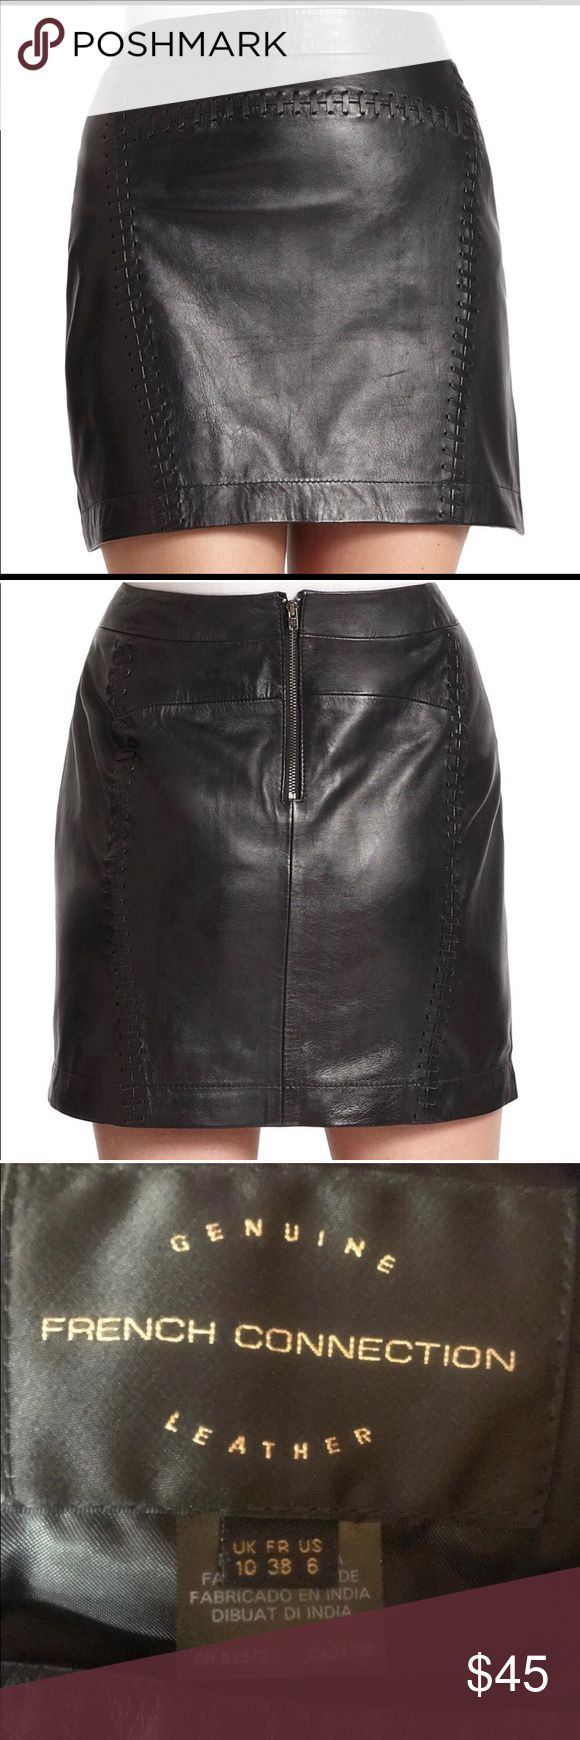 French Connection leather skirt!! ❤️ In excellent condition, no rips or tears, is brand new! I just bought this from another posher, and it fits me a little big 😕 . Just trying to get what I paid for it back 🙈 French Connection Skirts Mini